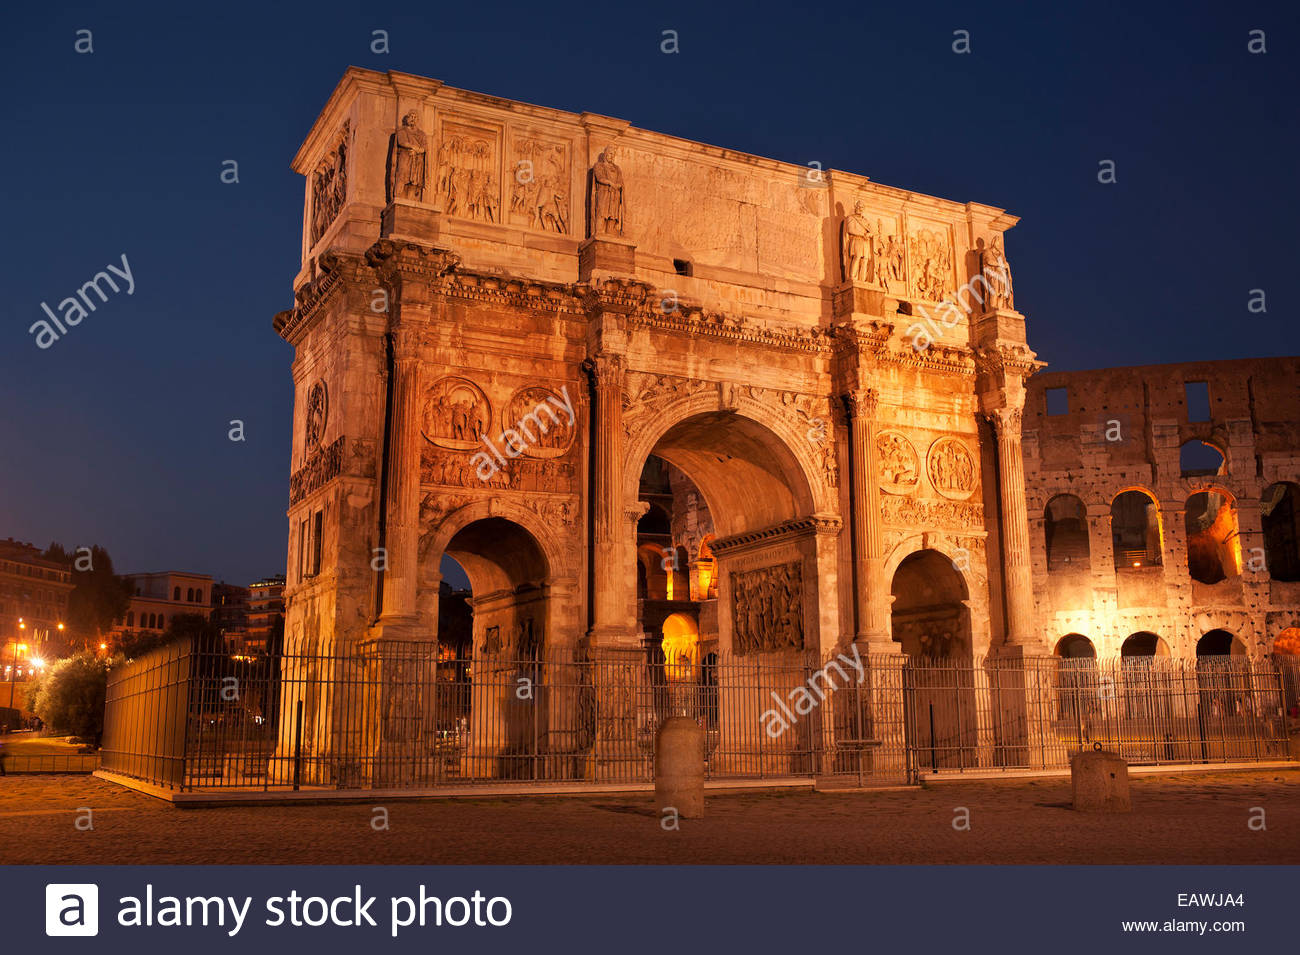 Lights illuminate the Arch of Constantine at night. - Stock Image